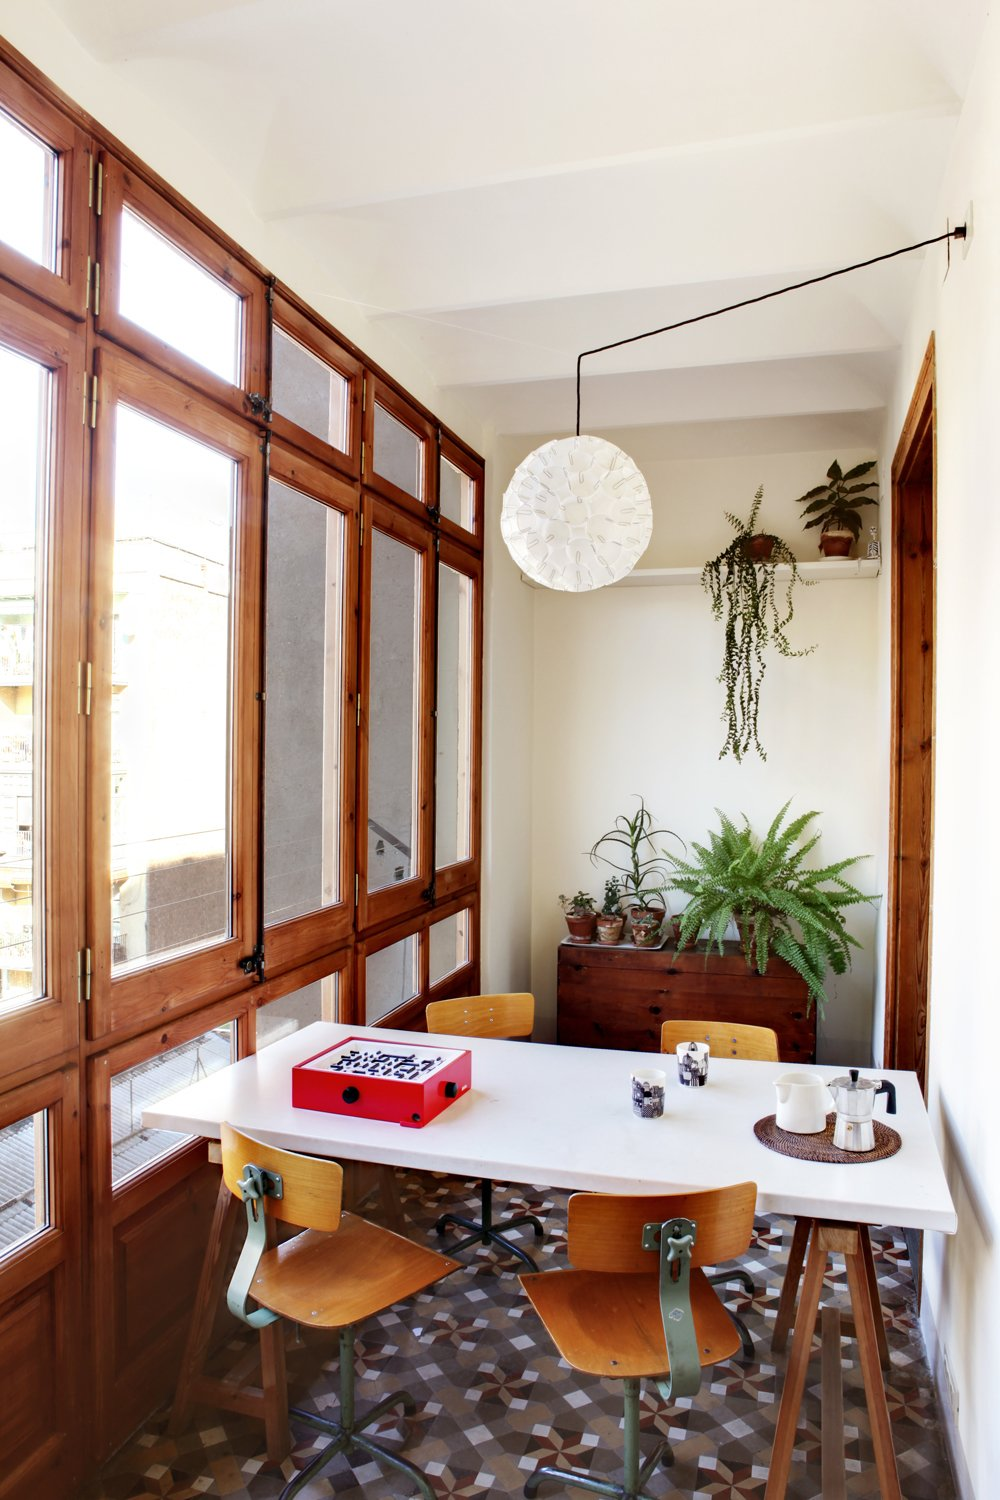 A glazed veranda on the flat's west side offers a cozy spot to enjoy an espresso. The utilitarian table and chairs were purchased second-hand, while the lamp was custom designed.  Photo 5 of 8 in Historic Details and Playful Modernism Meet in this Stunning Barcelona Flat